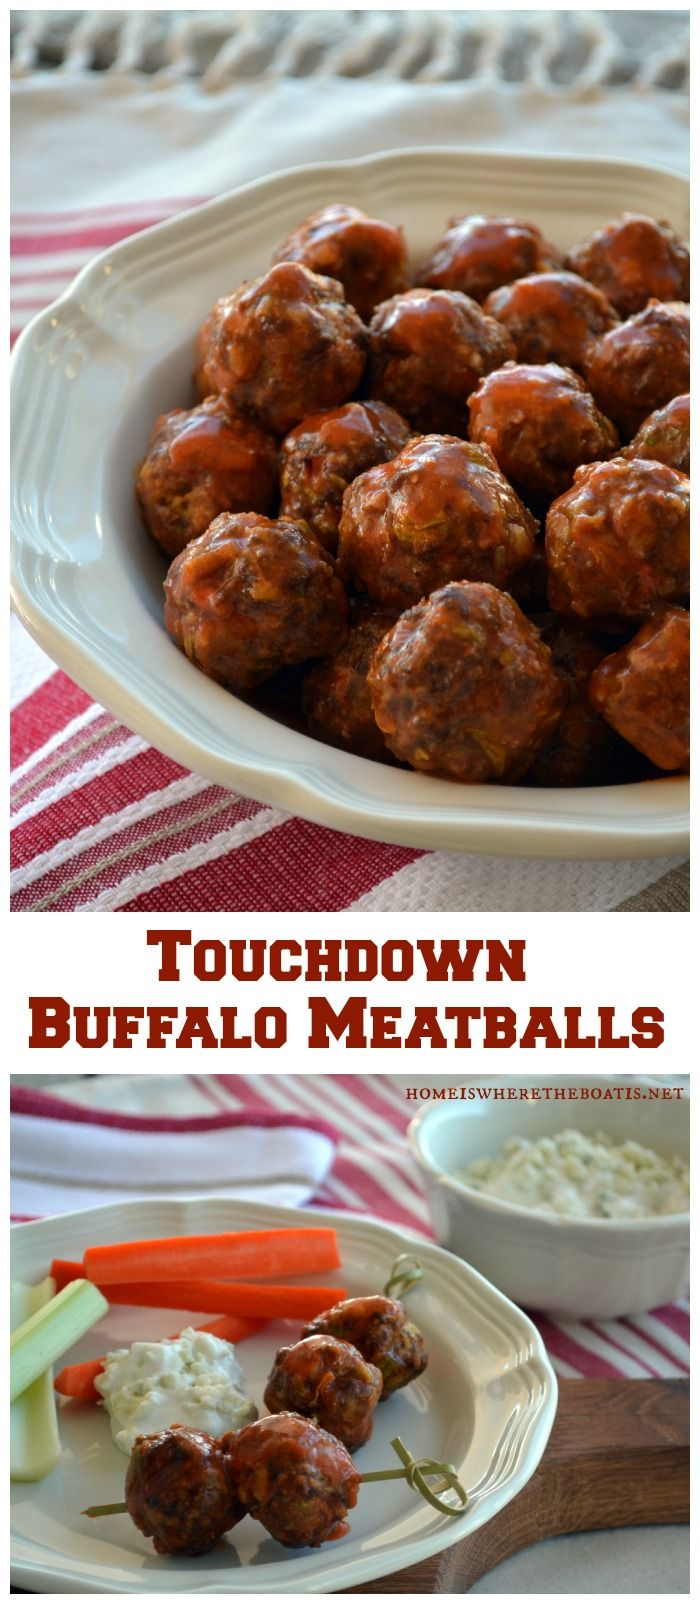 touchdown-buffalo-meatballs